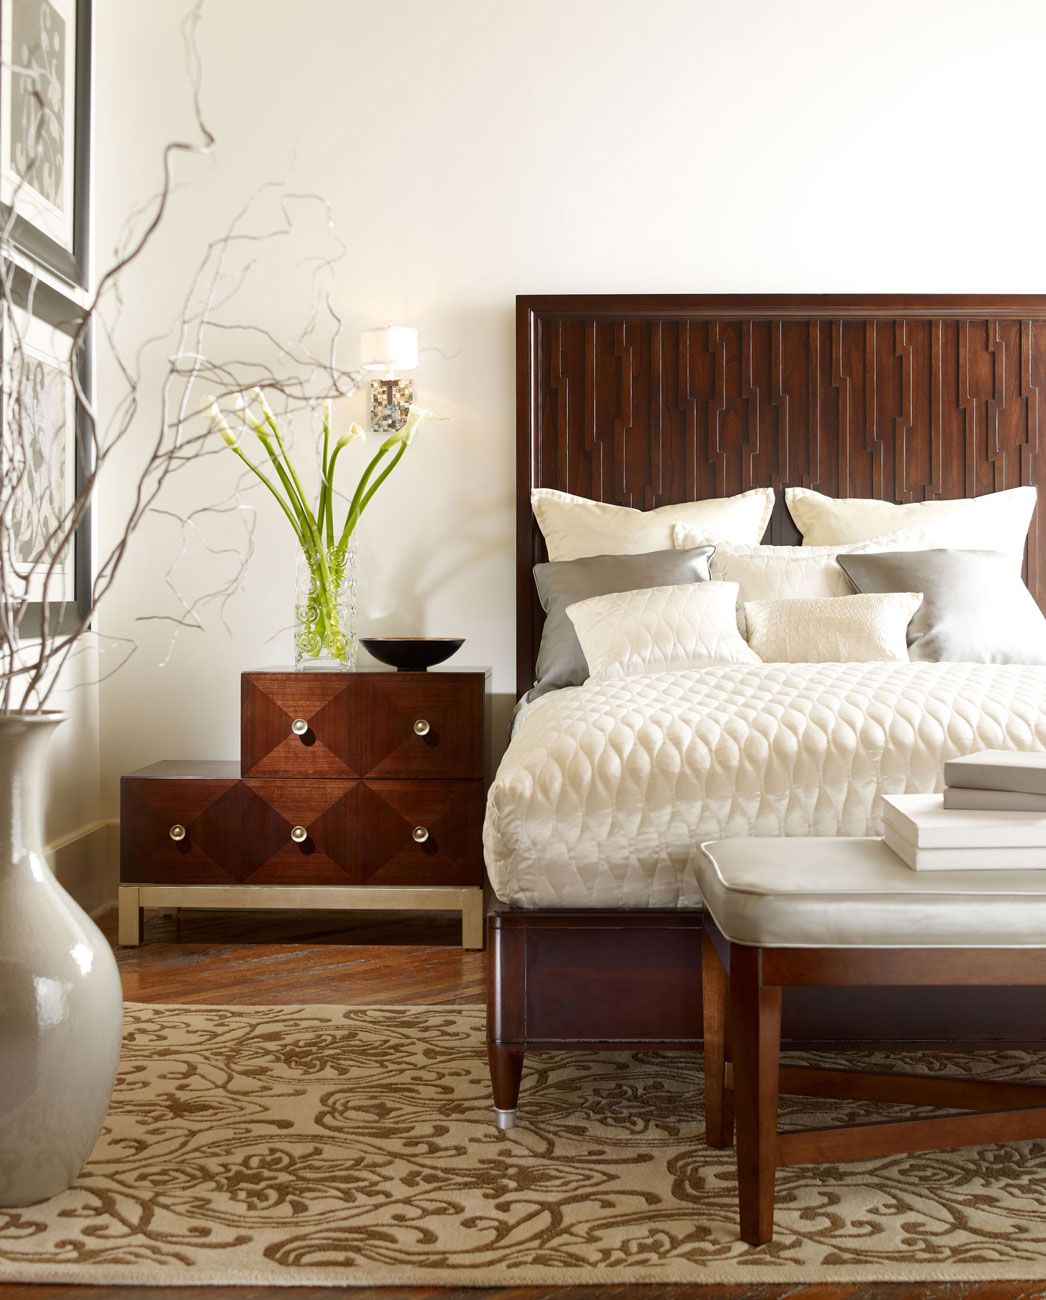 Candice Olson Bedroom Collection By Highland House #design